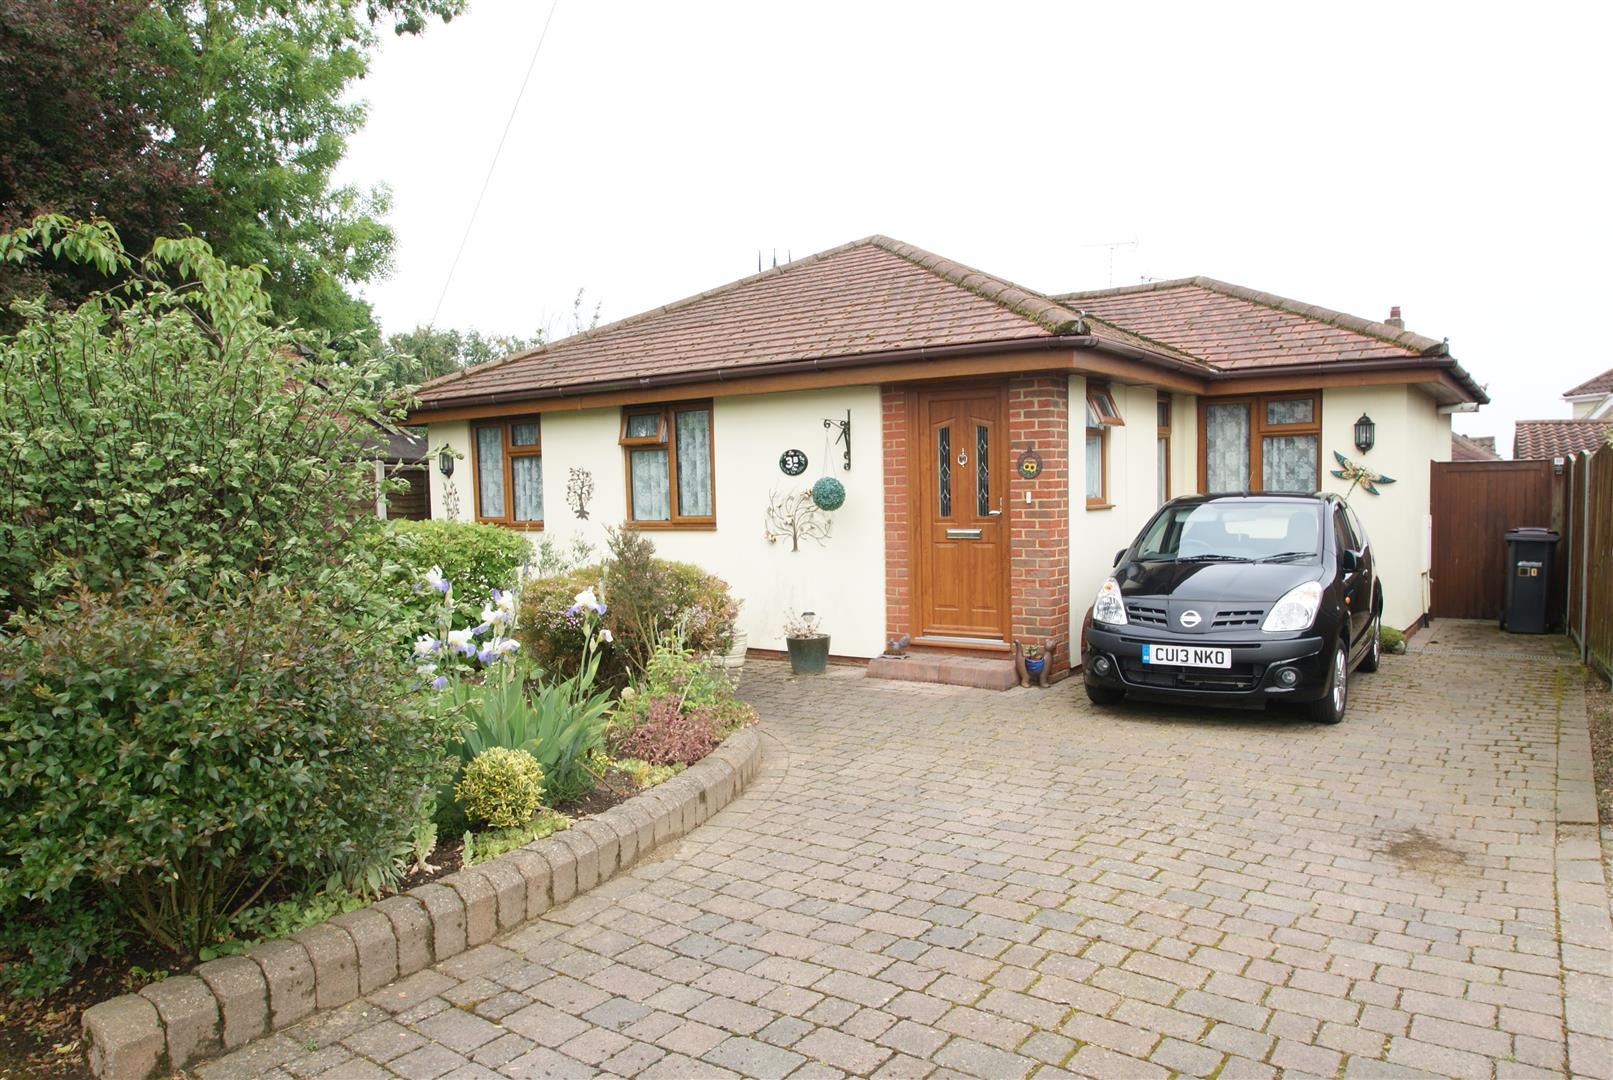 Richmond Drive, Rayleigh – For Sale